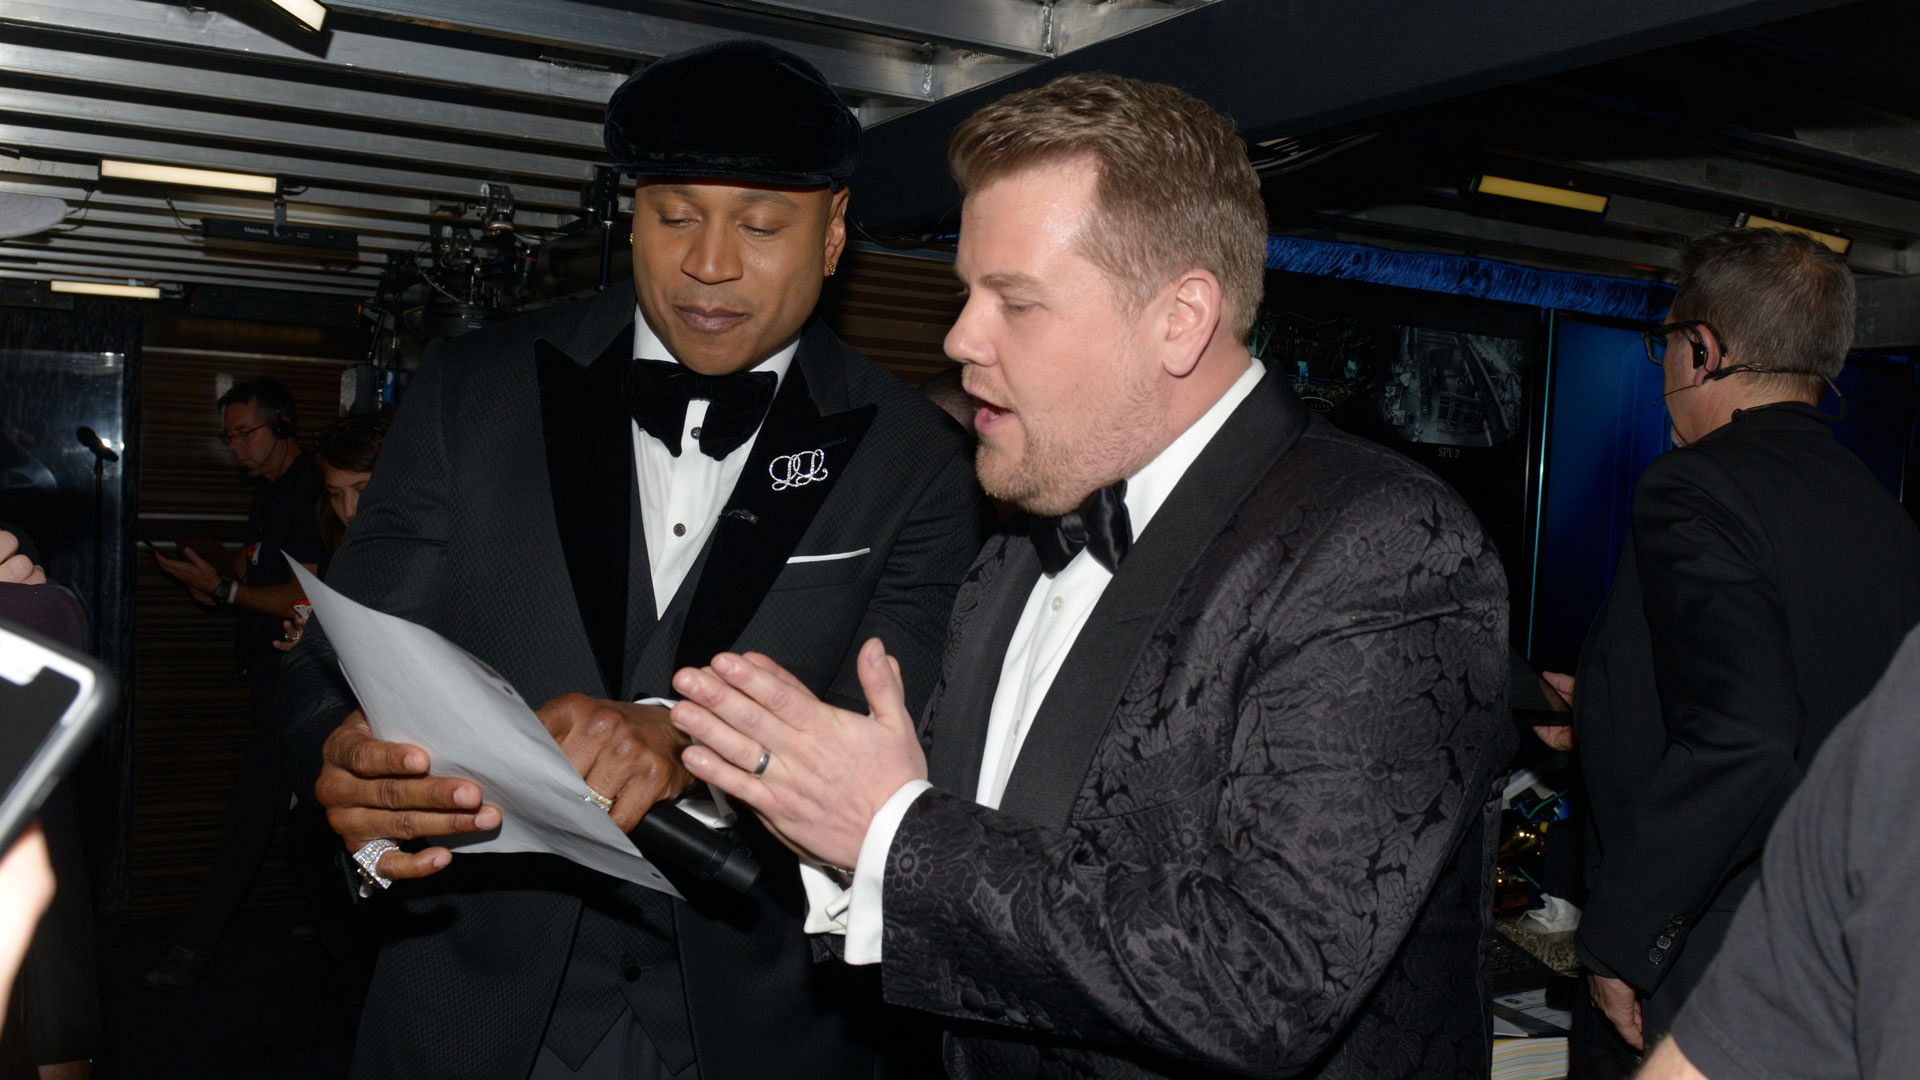 LL COOL J and James Corden—when hosts unite